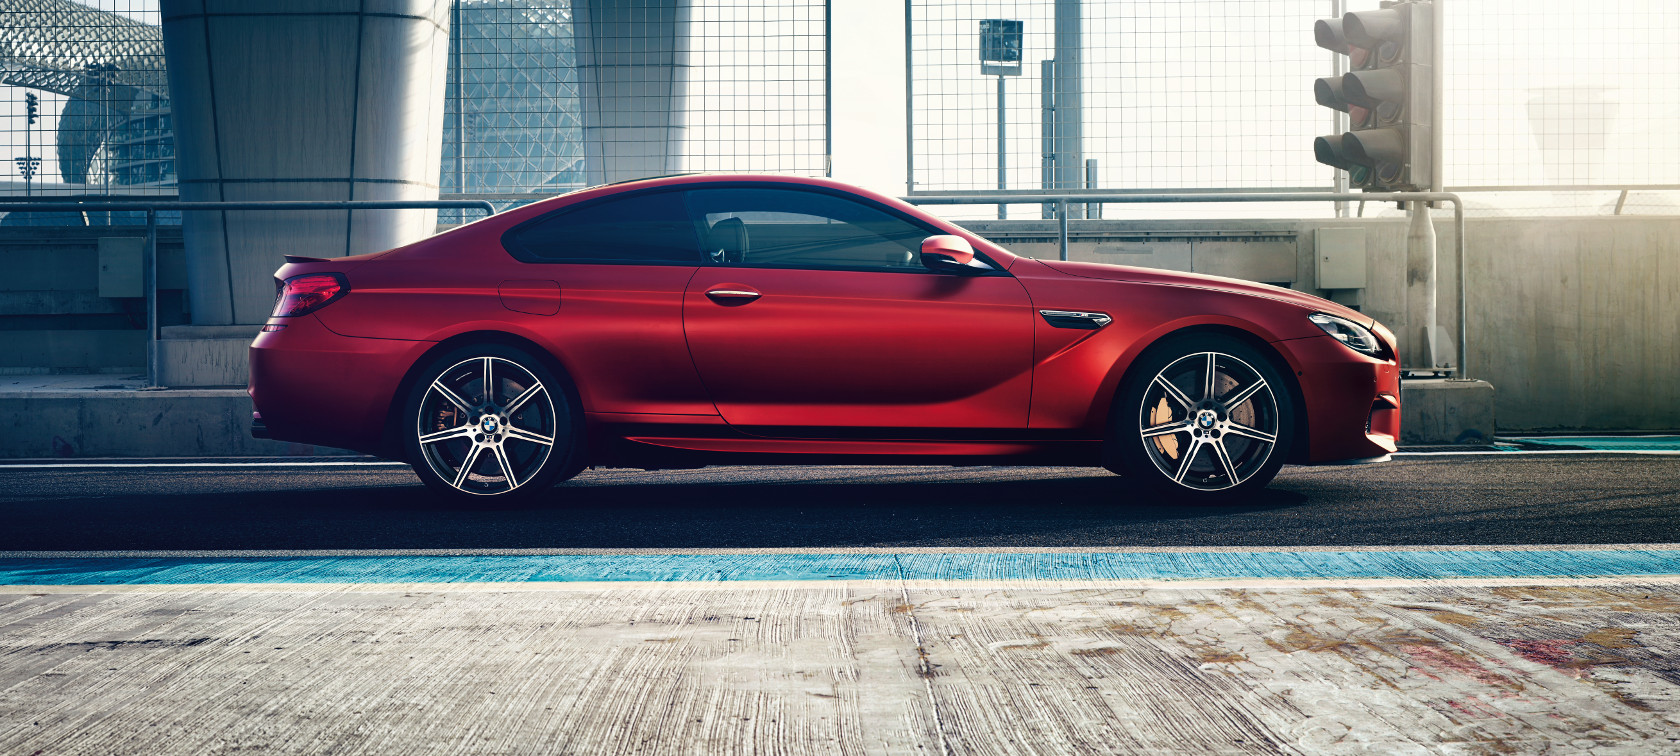 BMW M Series M6 Coupe: frozen red metallic, side view.